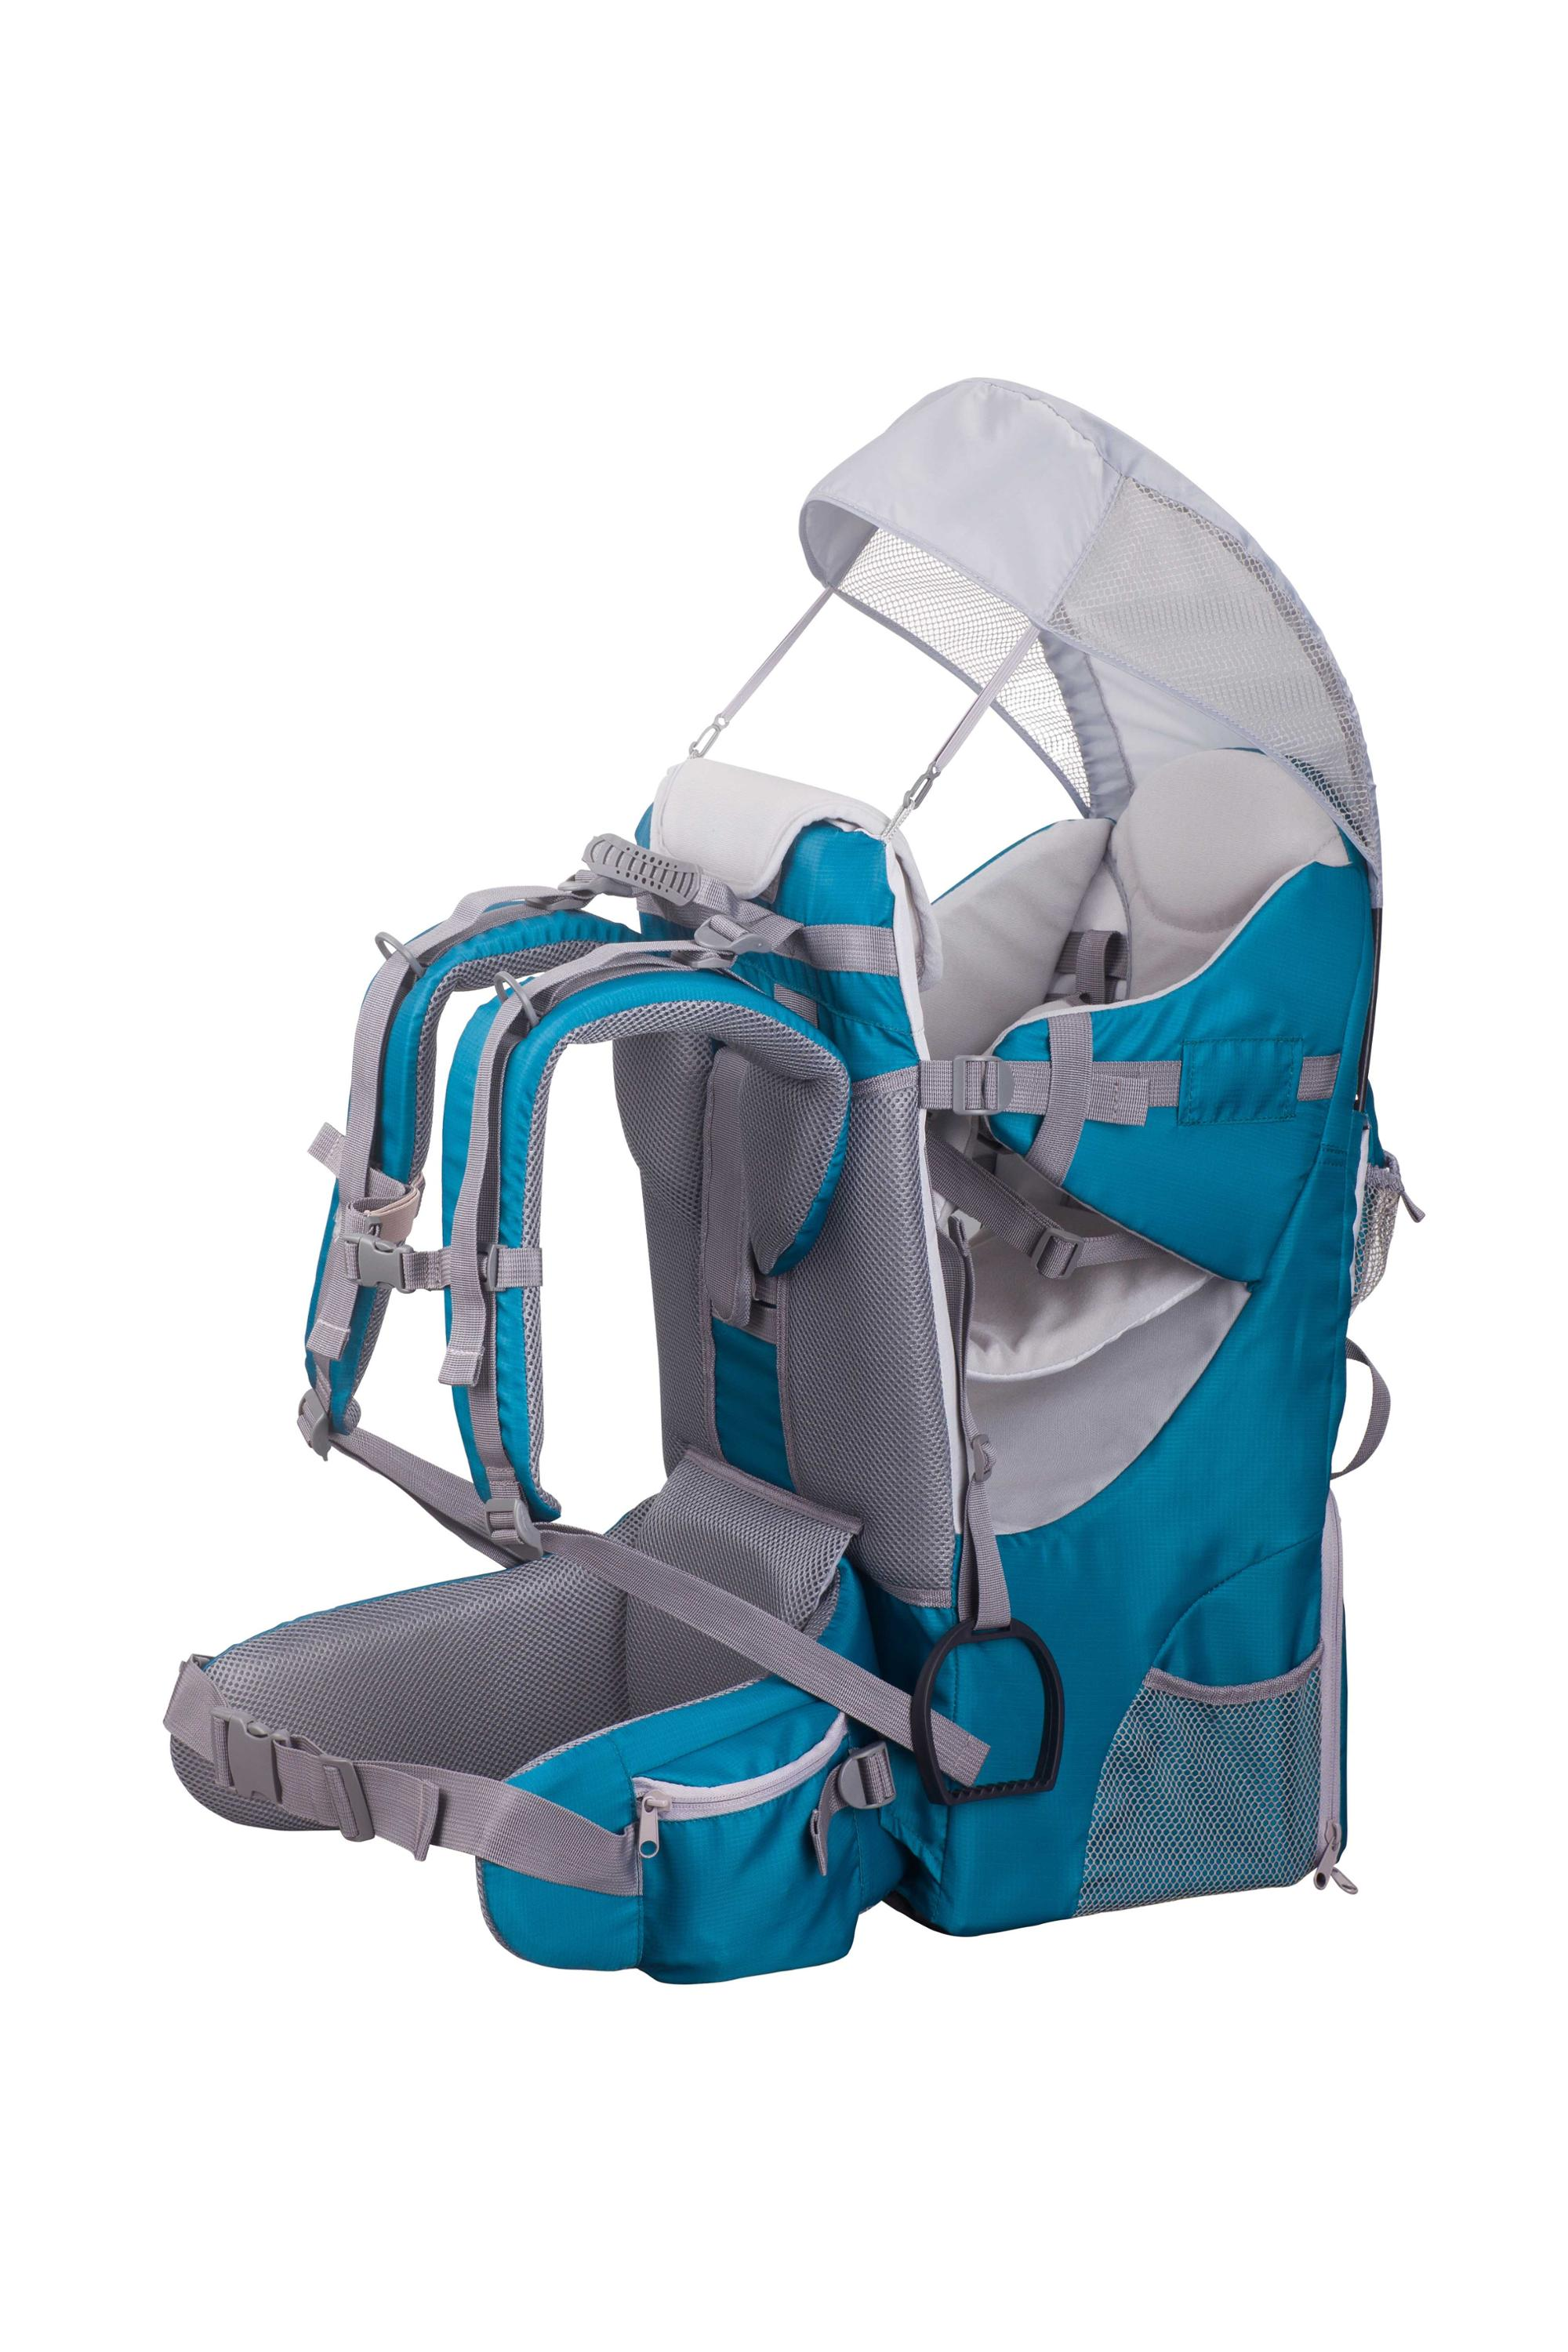 backpack baby diaper nappy bag (with EN13209) baby product